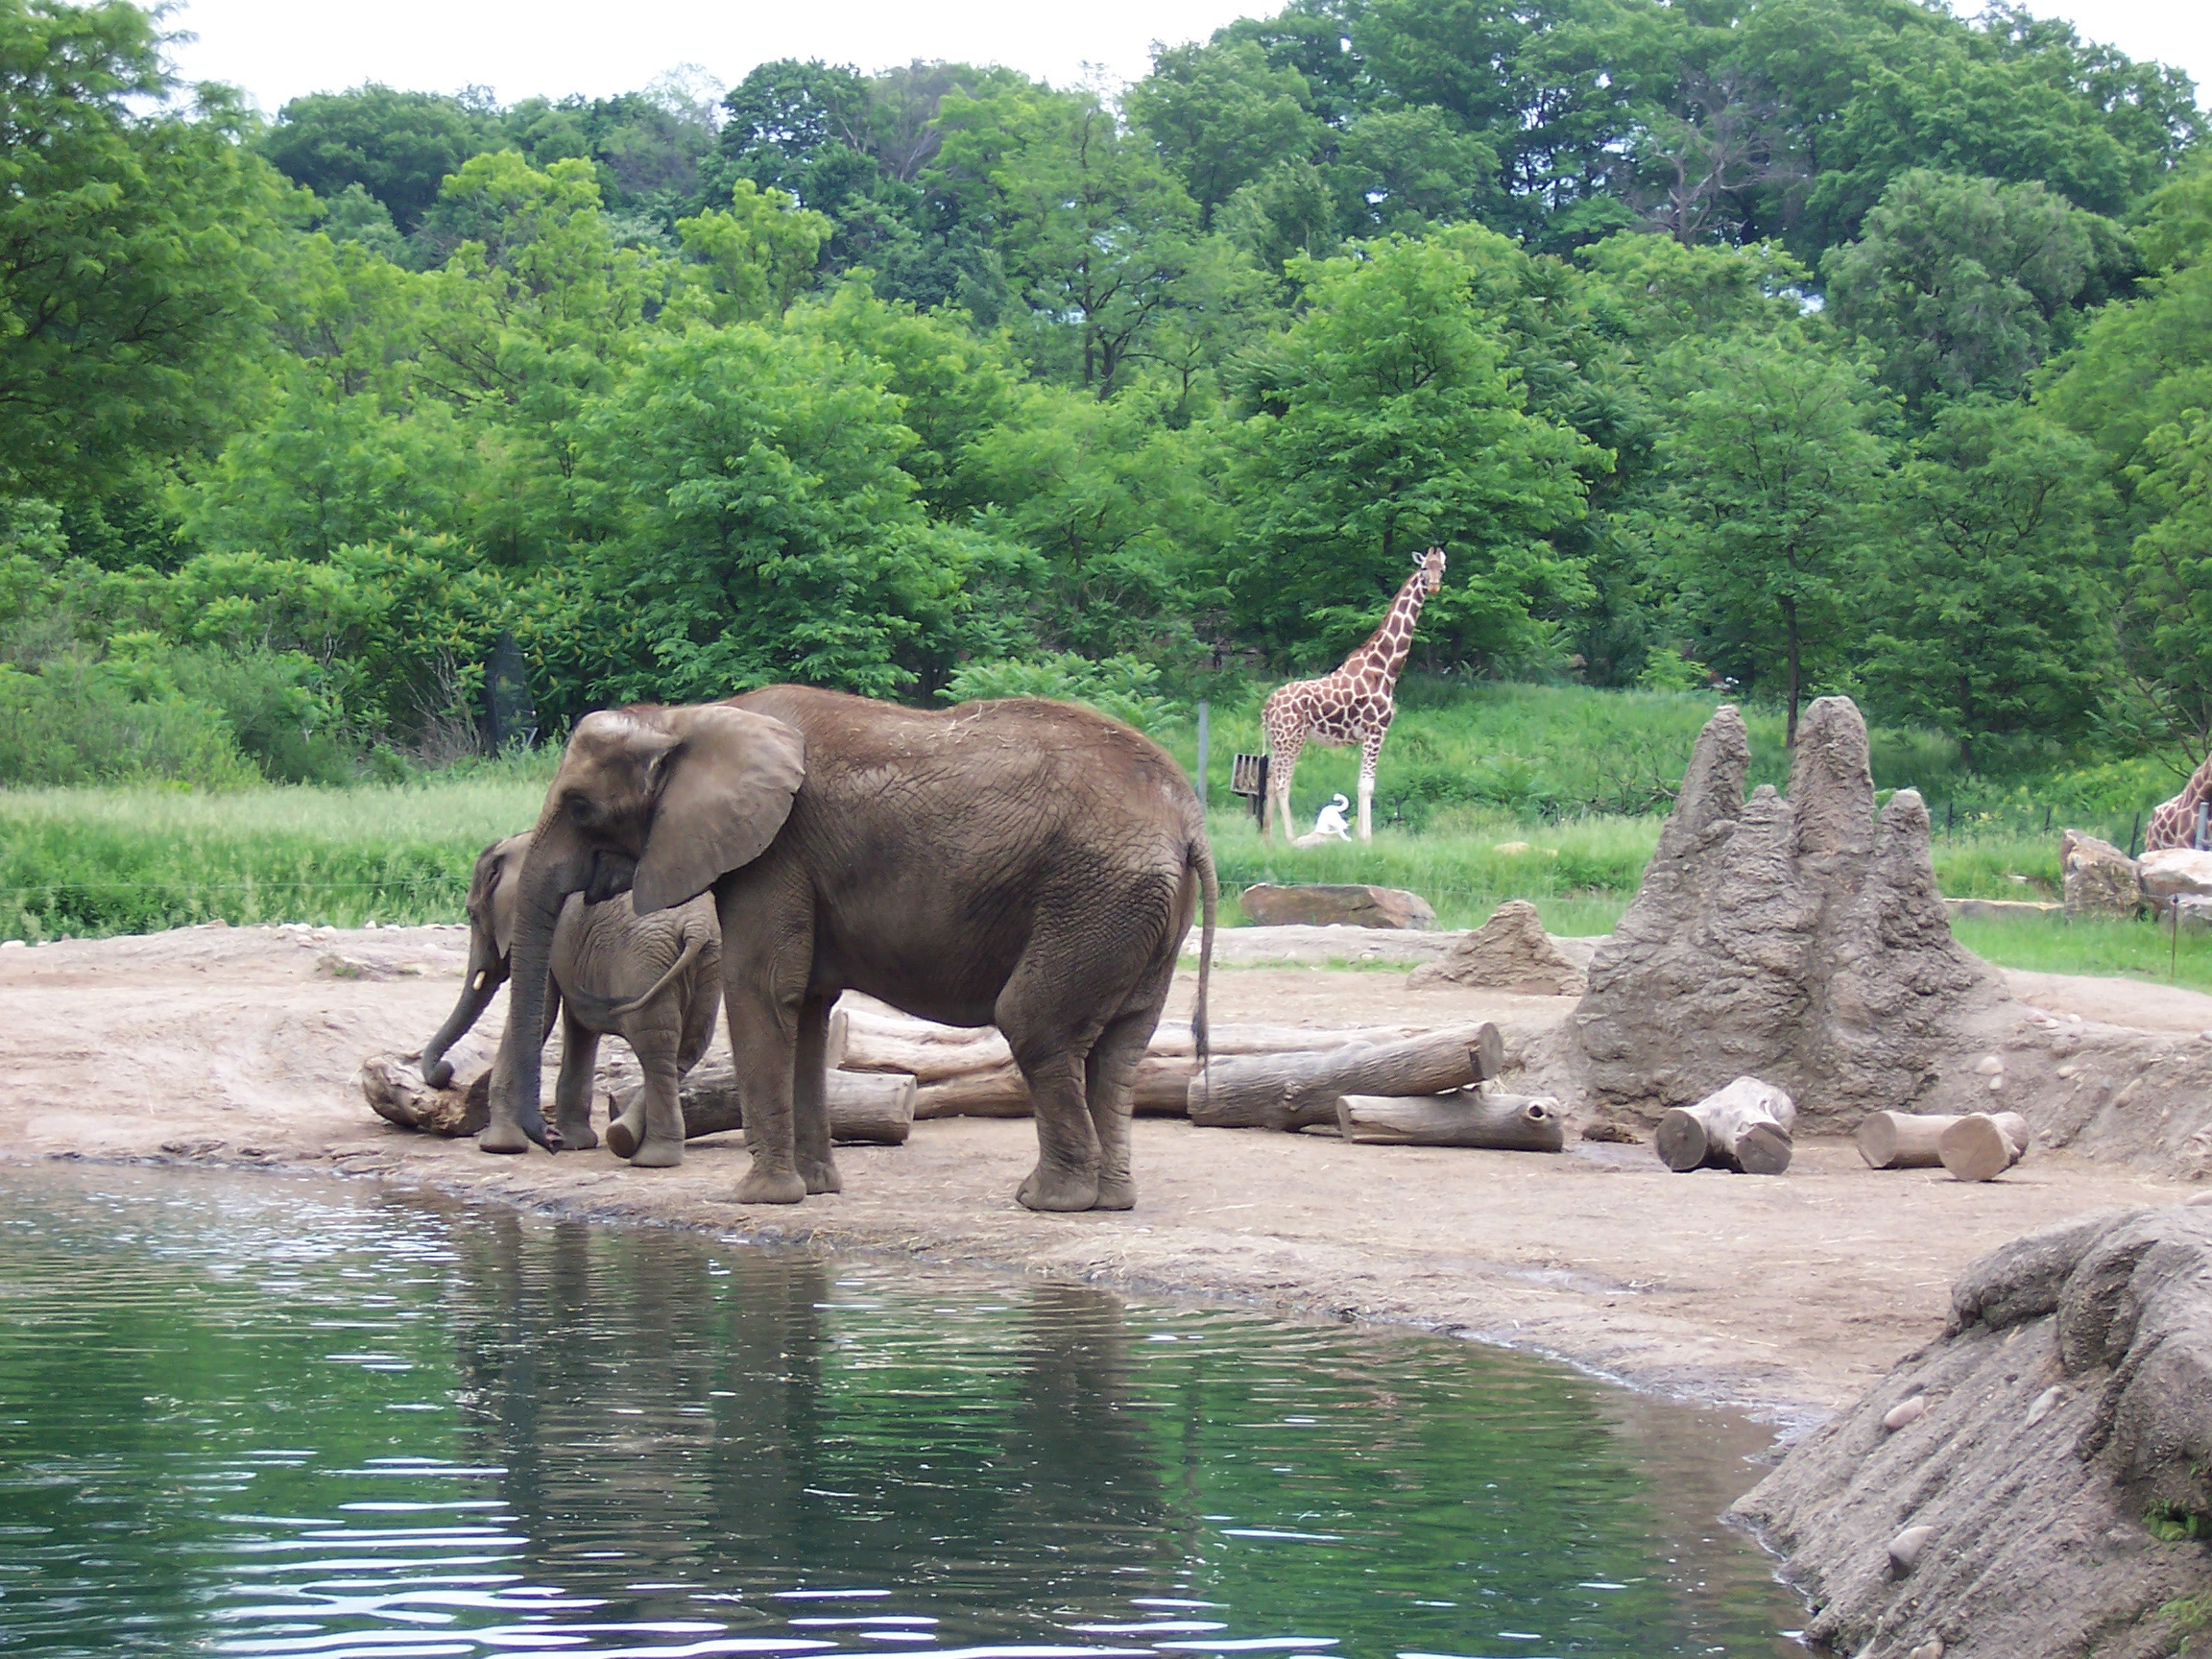 Elephants with a giraffe in the background at the zoo's African Savanna exhibit.